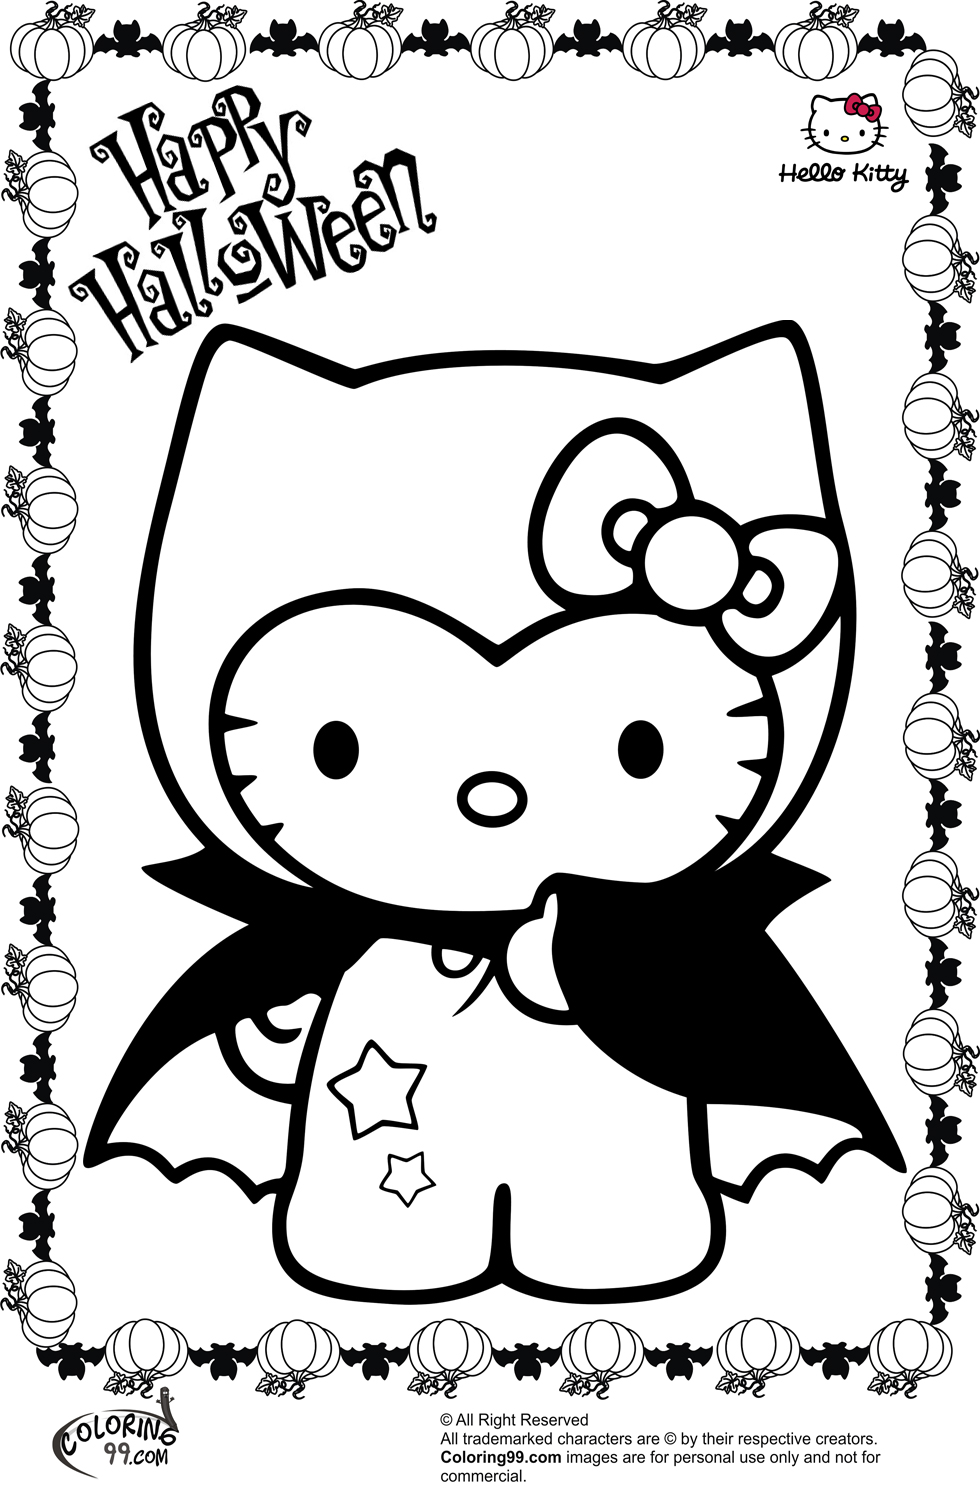 coloring pages halloween halloween printable coloring pages minnesota miranda halloween coloring pages